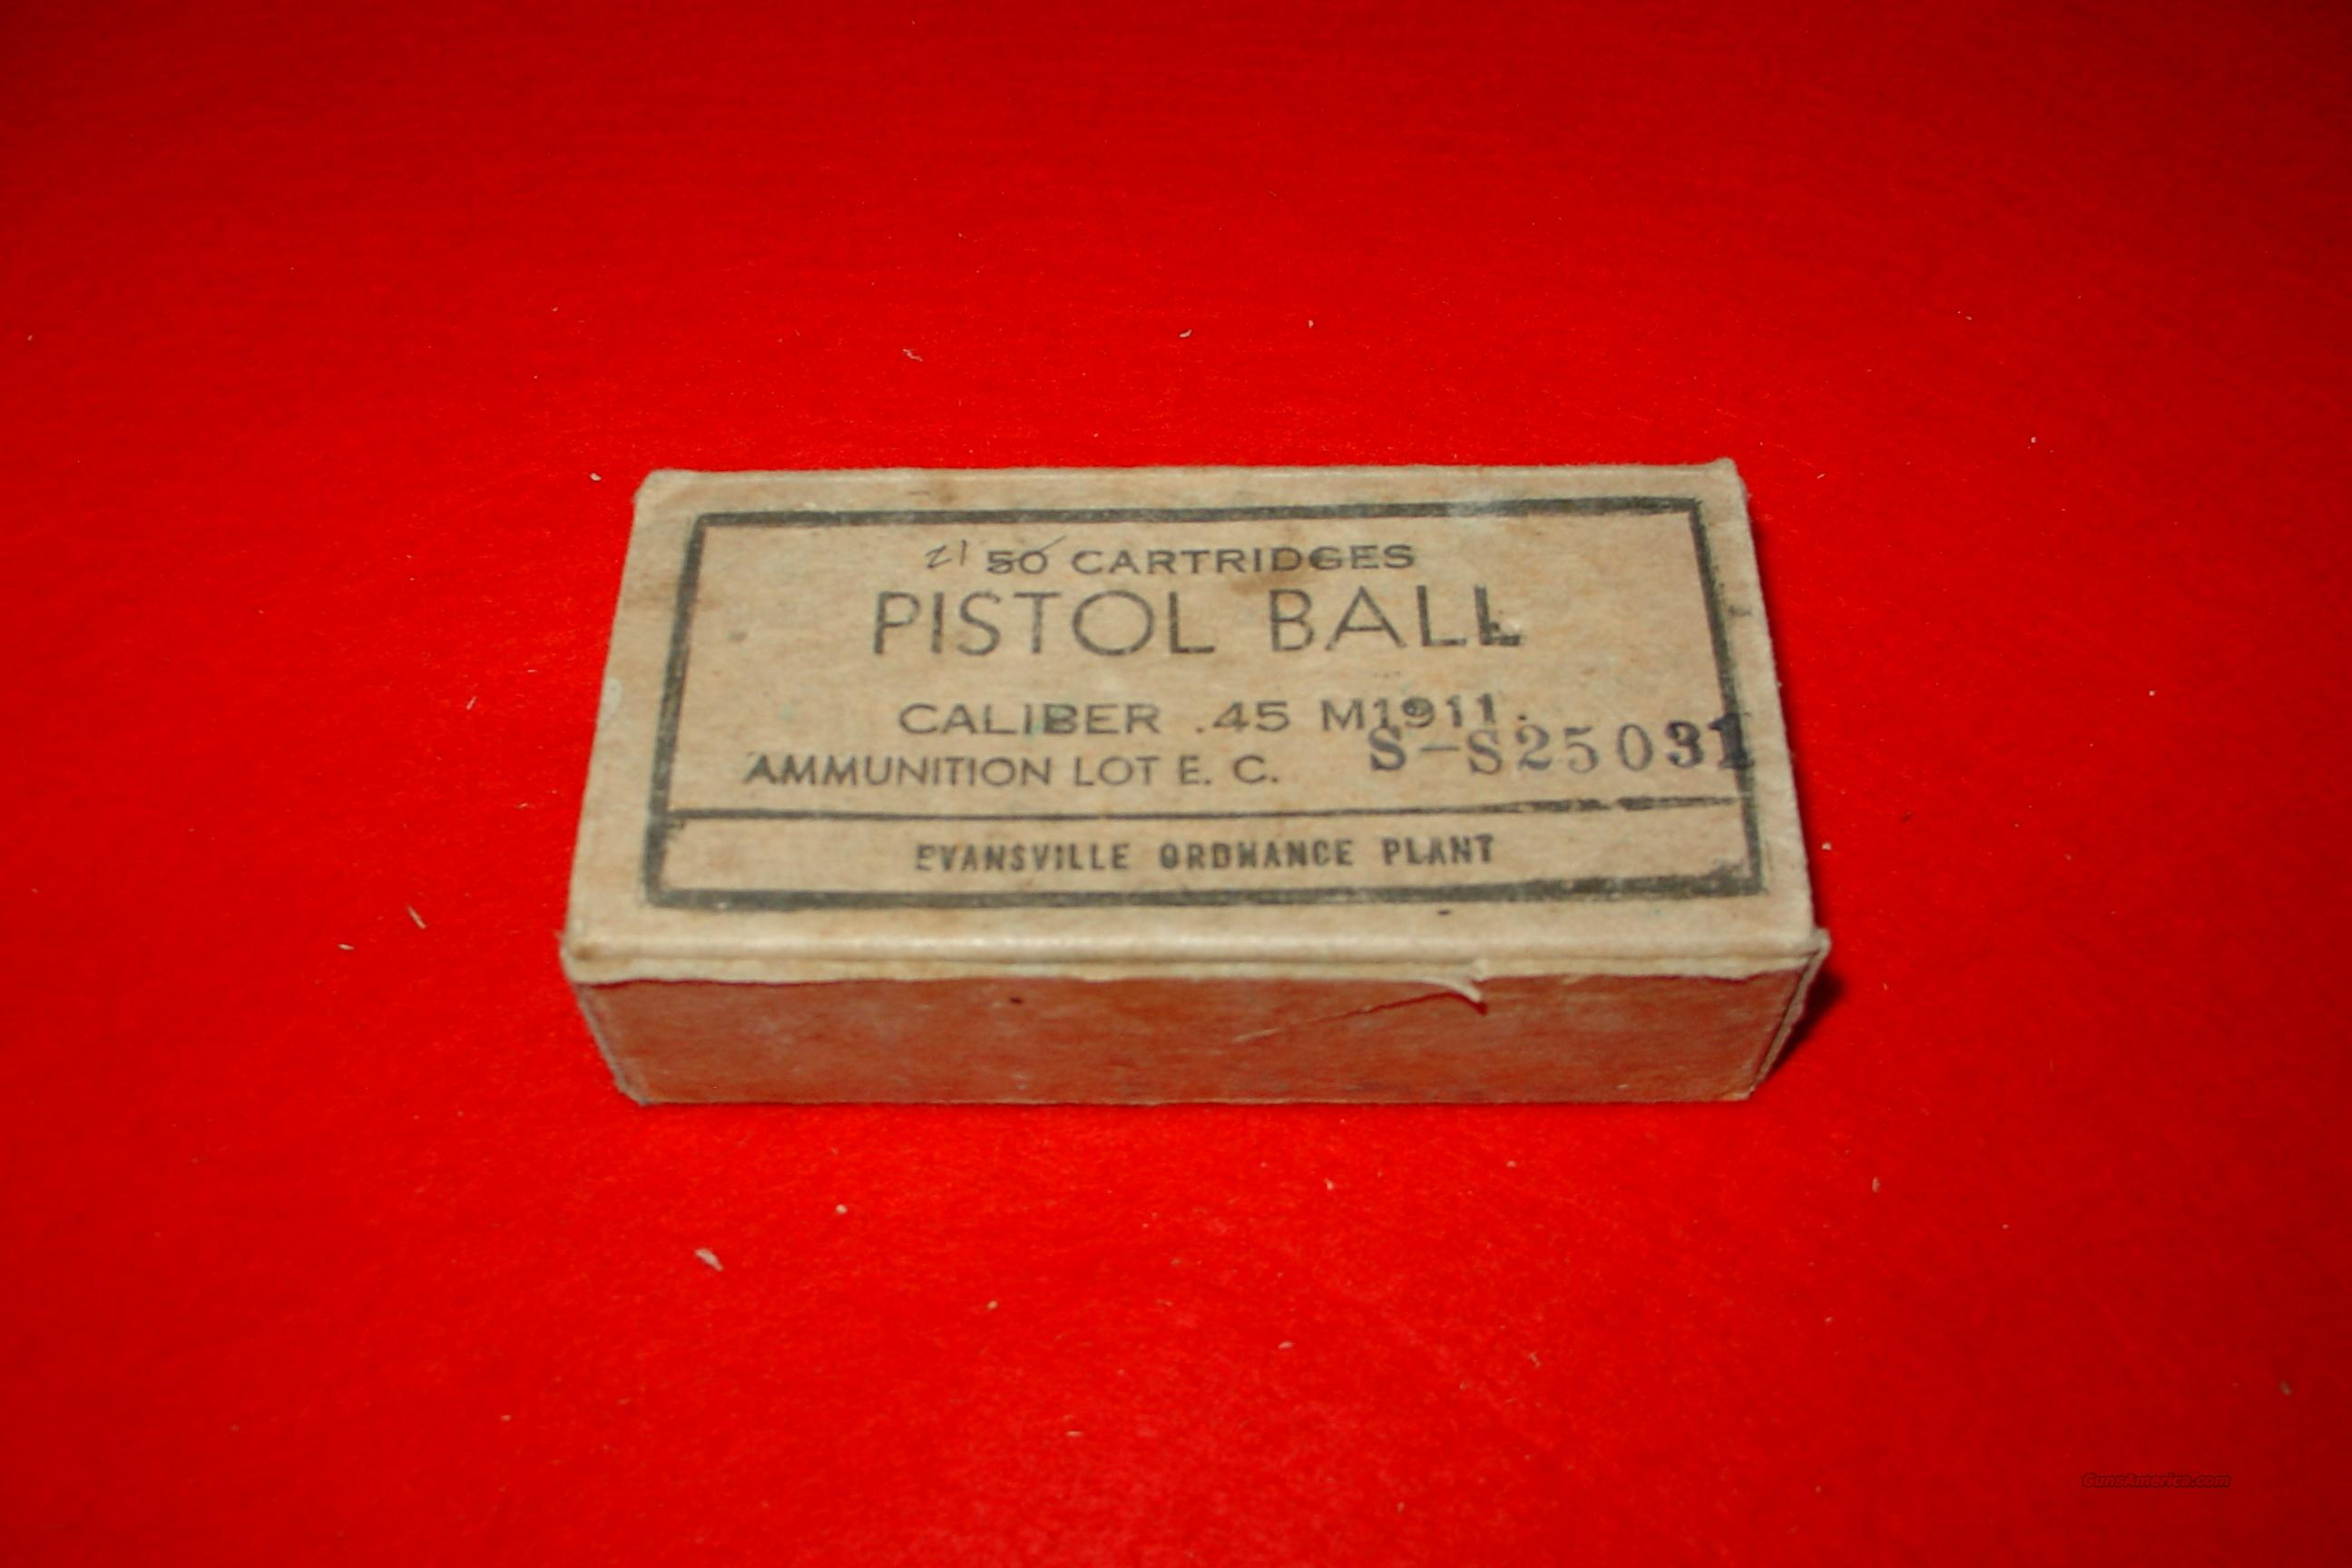 VINTAGE PISTOL BALL CALIBER .45 M1911 AMMO  Non-Guns > Ammunition